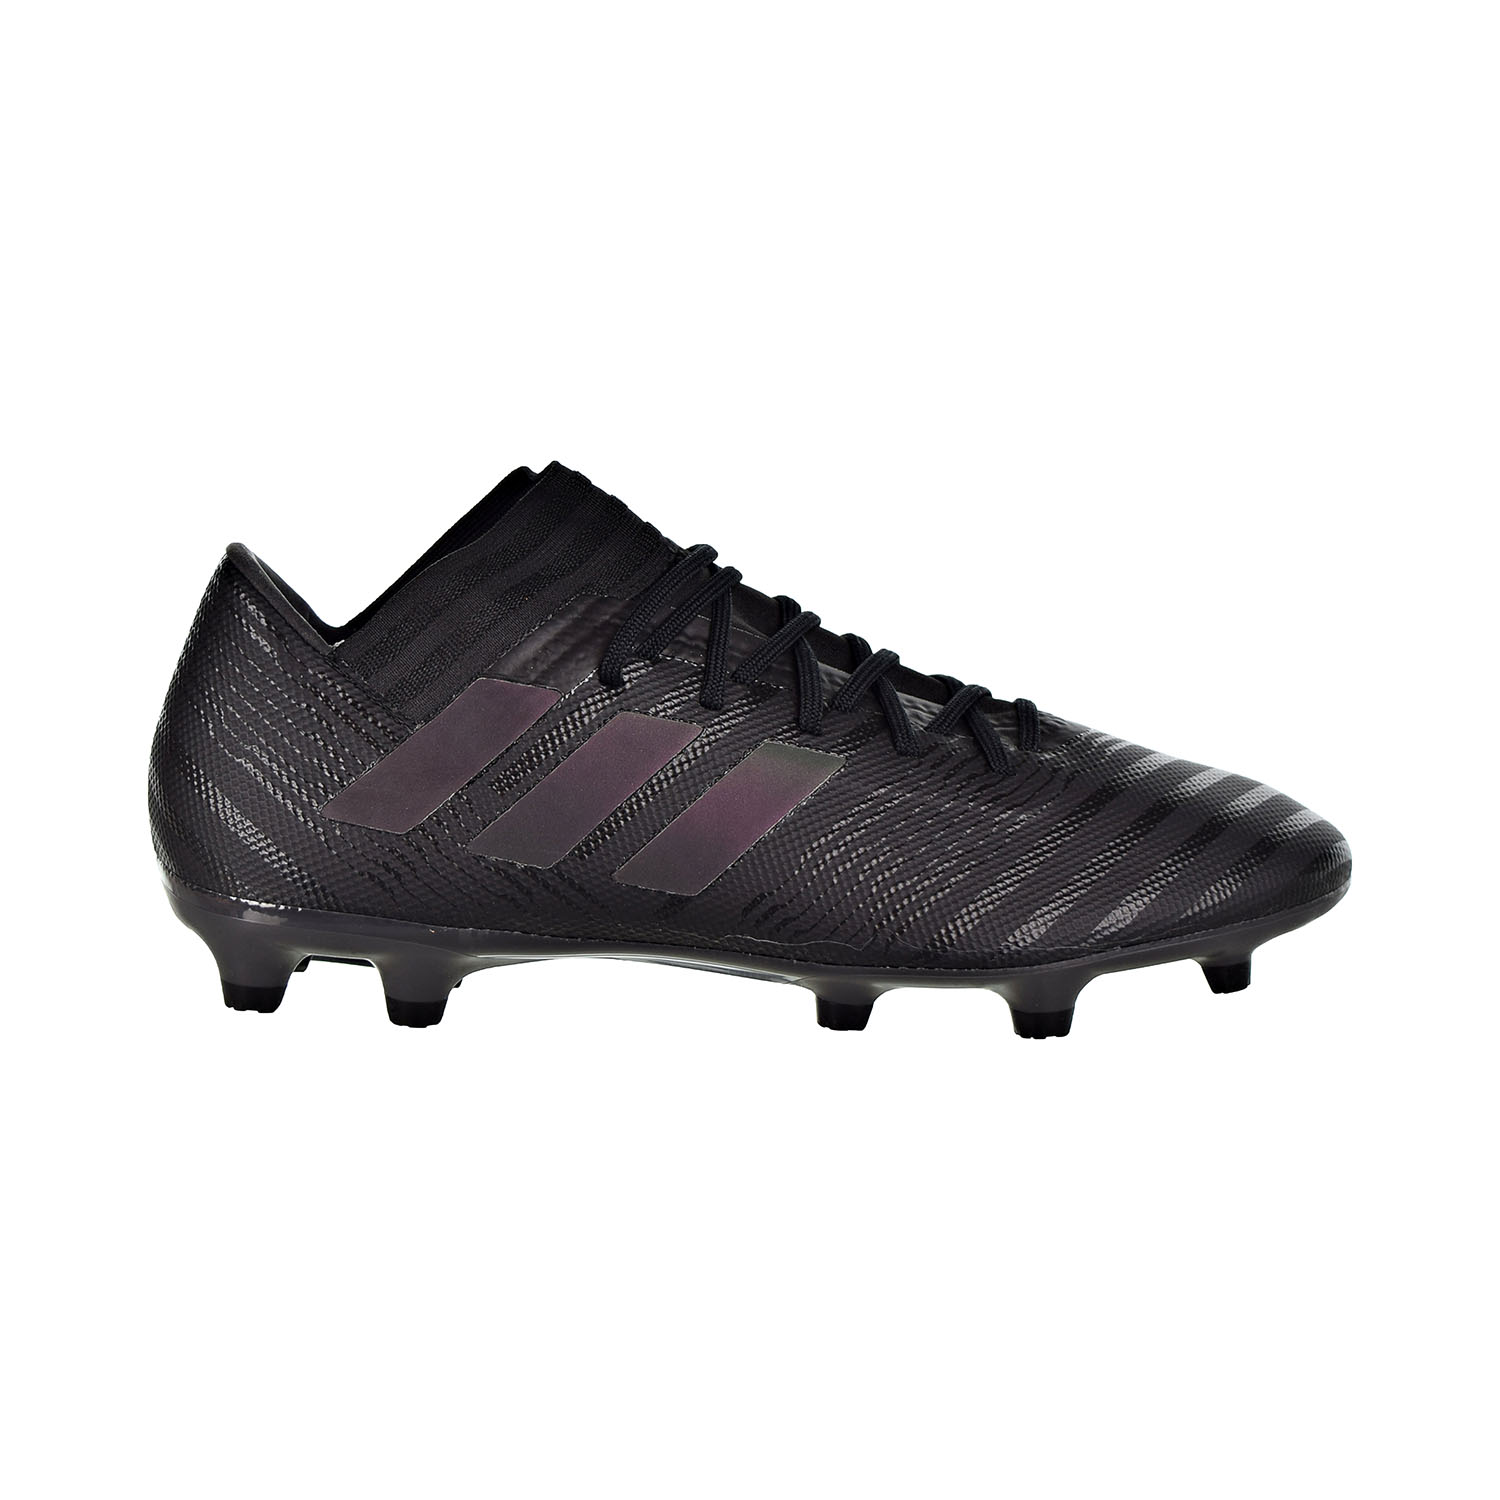 529a78984dd1 Details about Adidas Nemeziz 17.3 Firm Ground Men s Soccer Cleats Shoes  Core Black CP8988